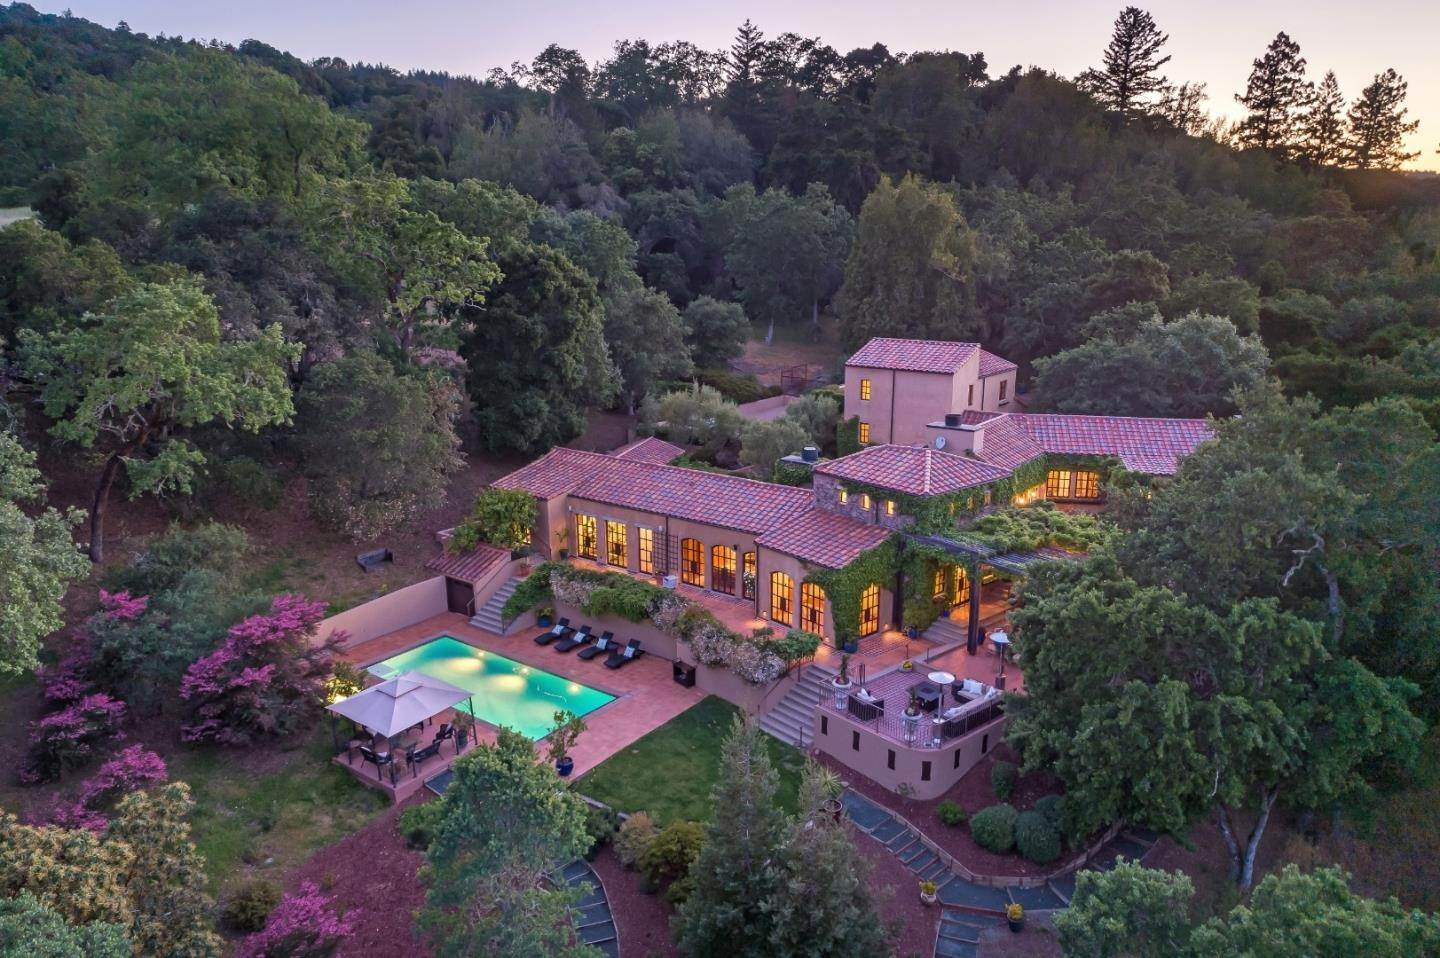 Property for Sale at 11 Buck Meadow Drive Portola Valley, California 94028 United States